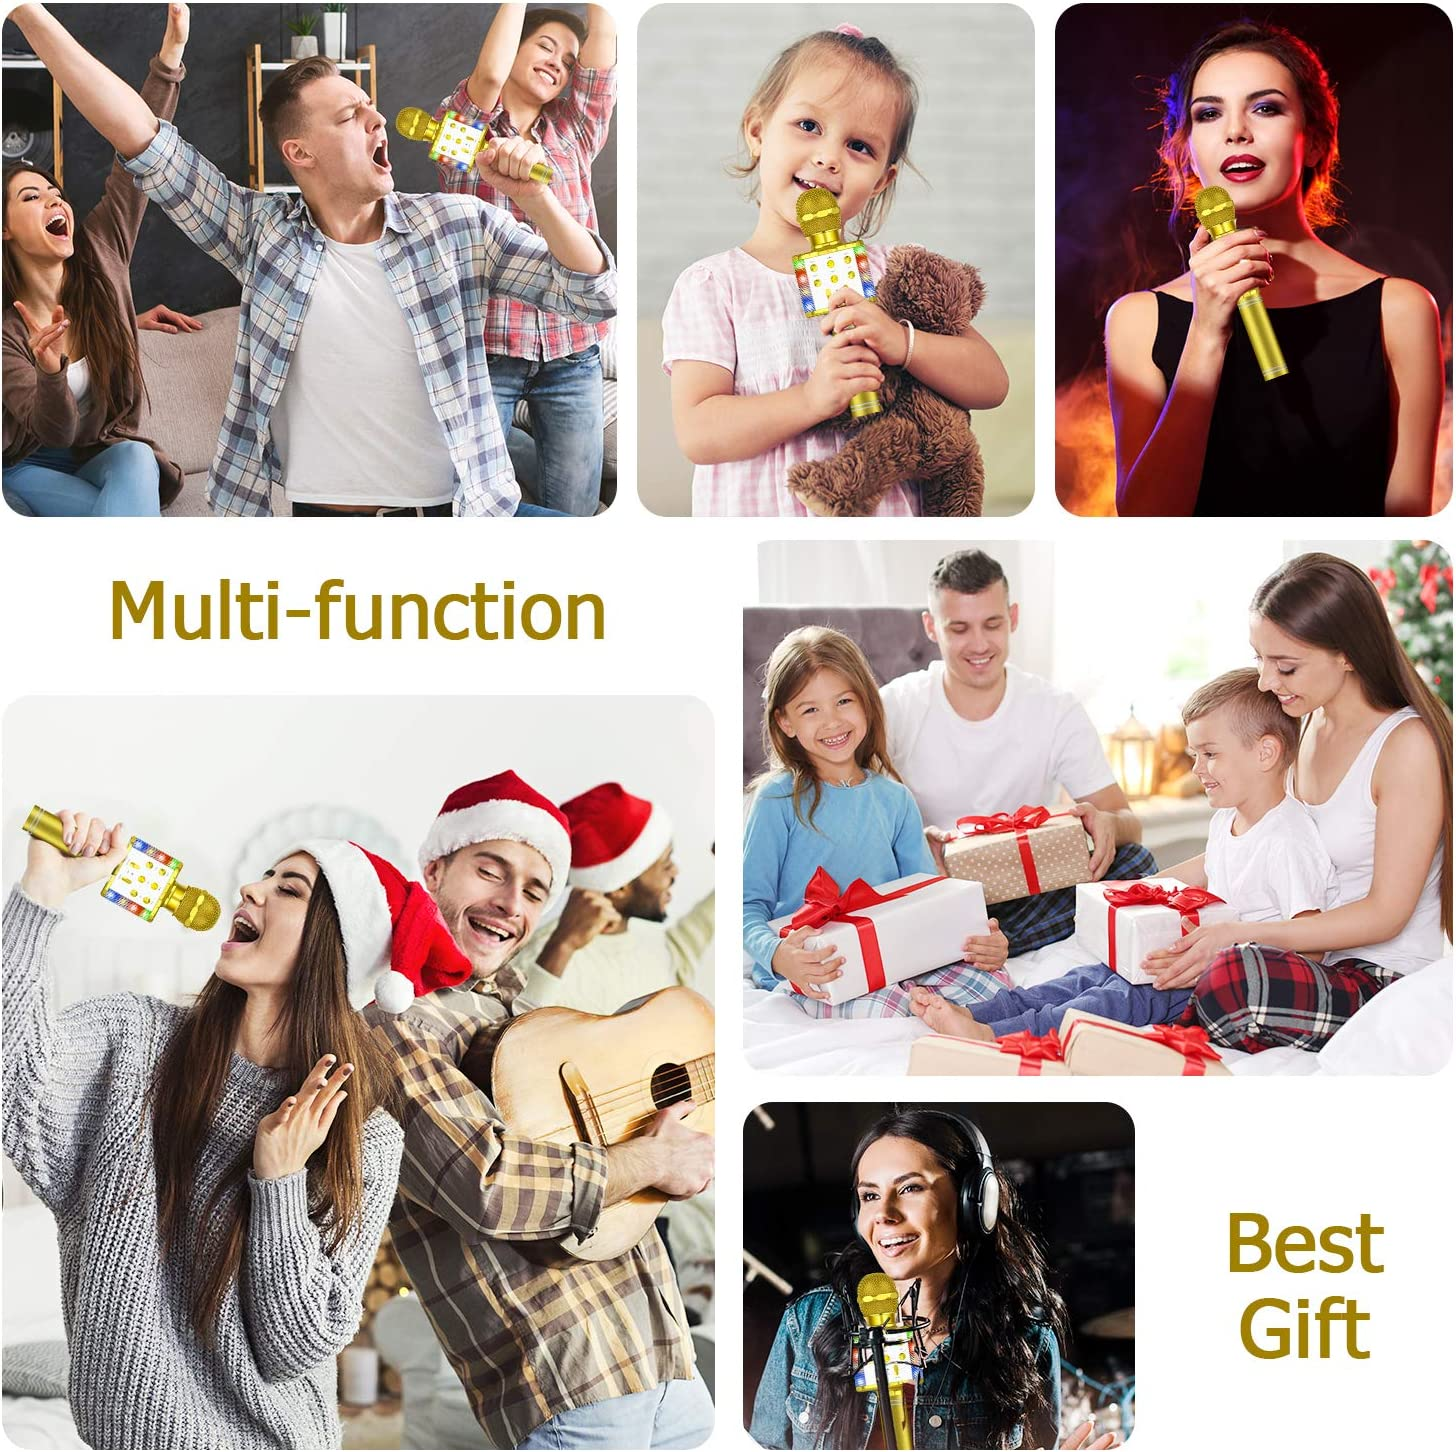 Compatible with Android /& iOS//PC Wireless Bluetooth Karaoke Microphone Rose Gold Tesoky 4 in 1 Magic Sound Portable Handheld Home Party KTV Player Karaoke Machine for Kids Adults with LED Lights